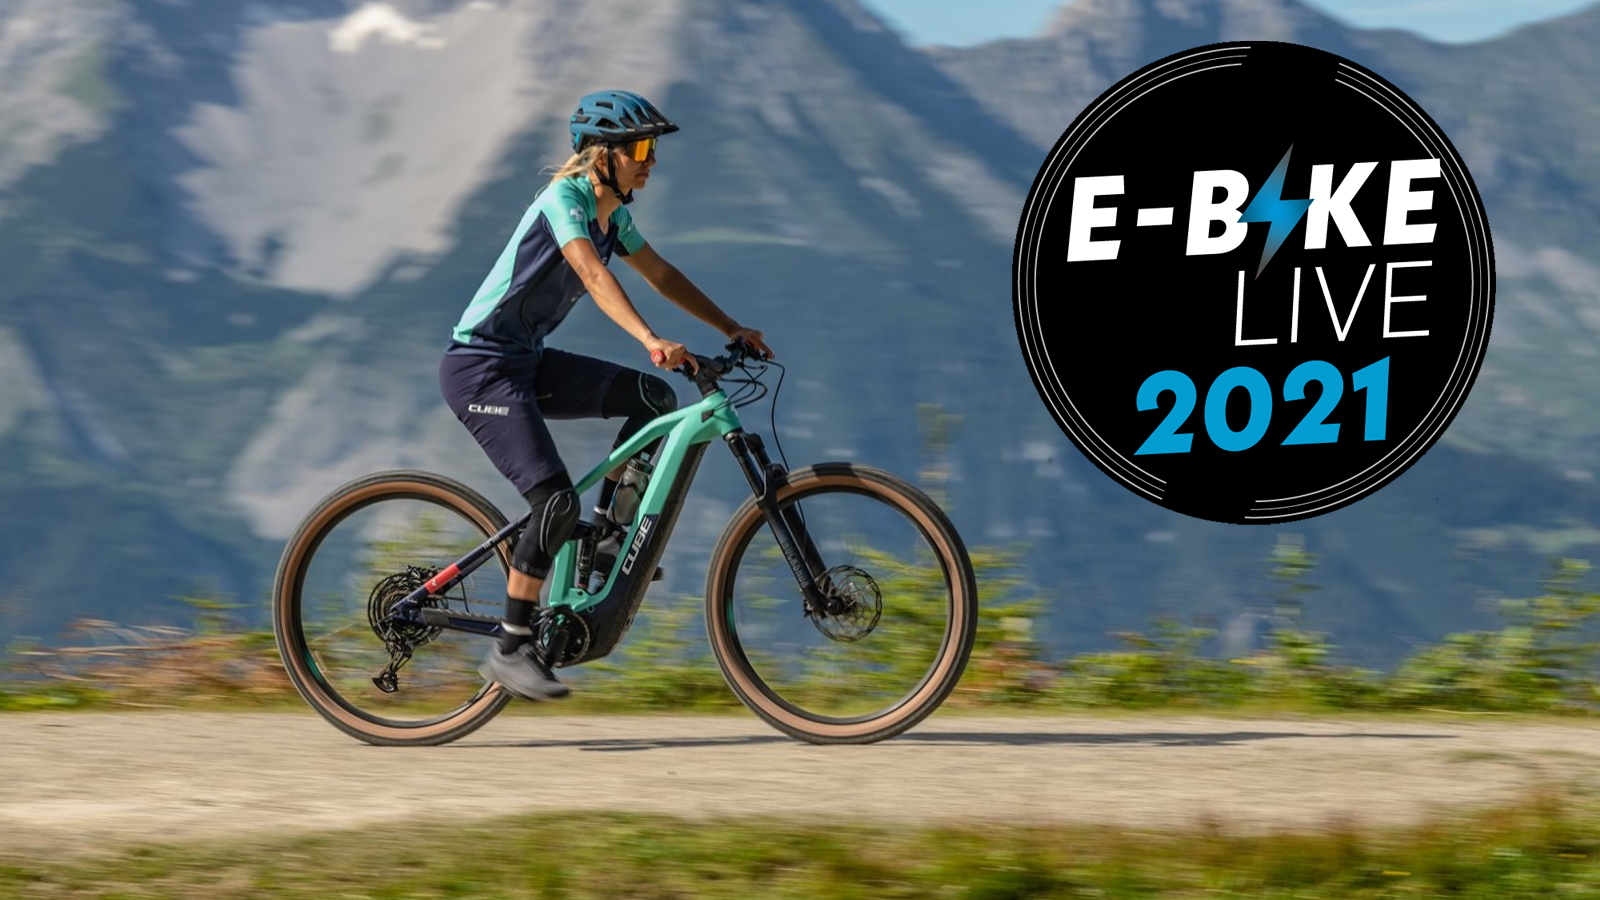 How much should I spend on an e-bike?